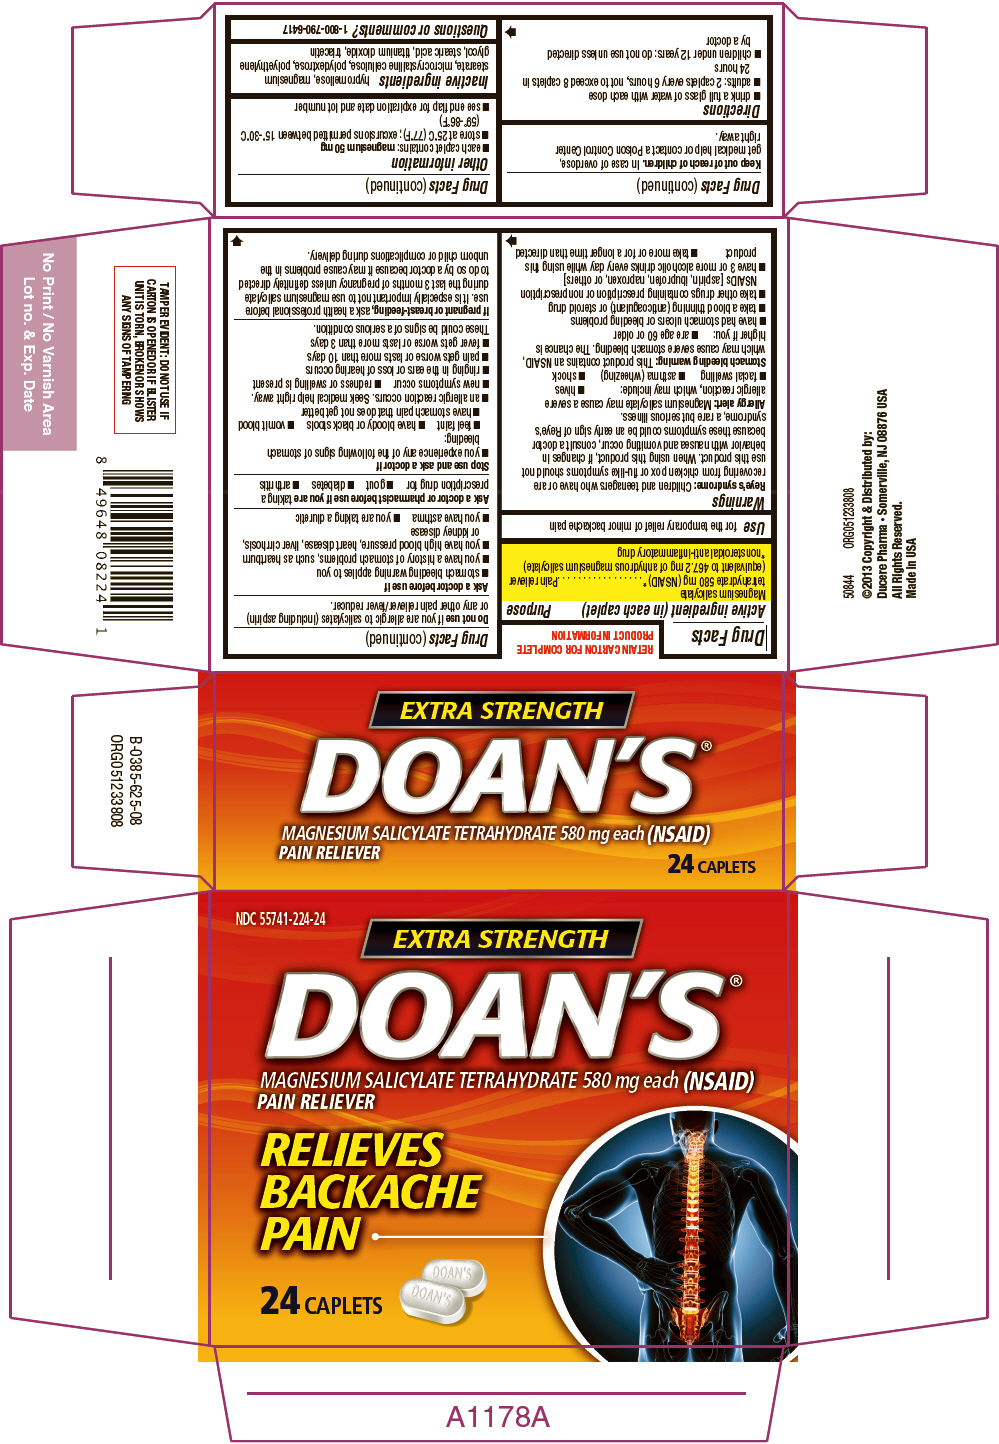 Doans Extra Strength (Magnesium Salicylate) Tablet [Ducere Pharma Llc]